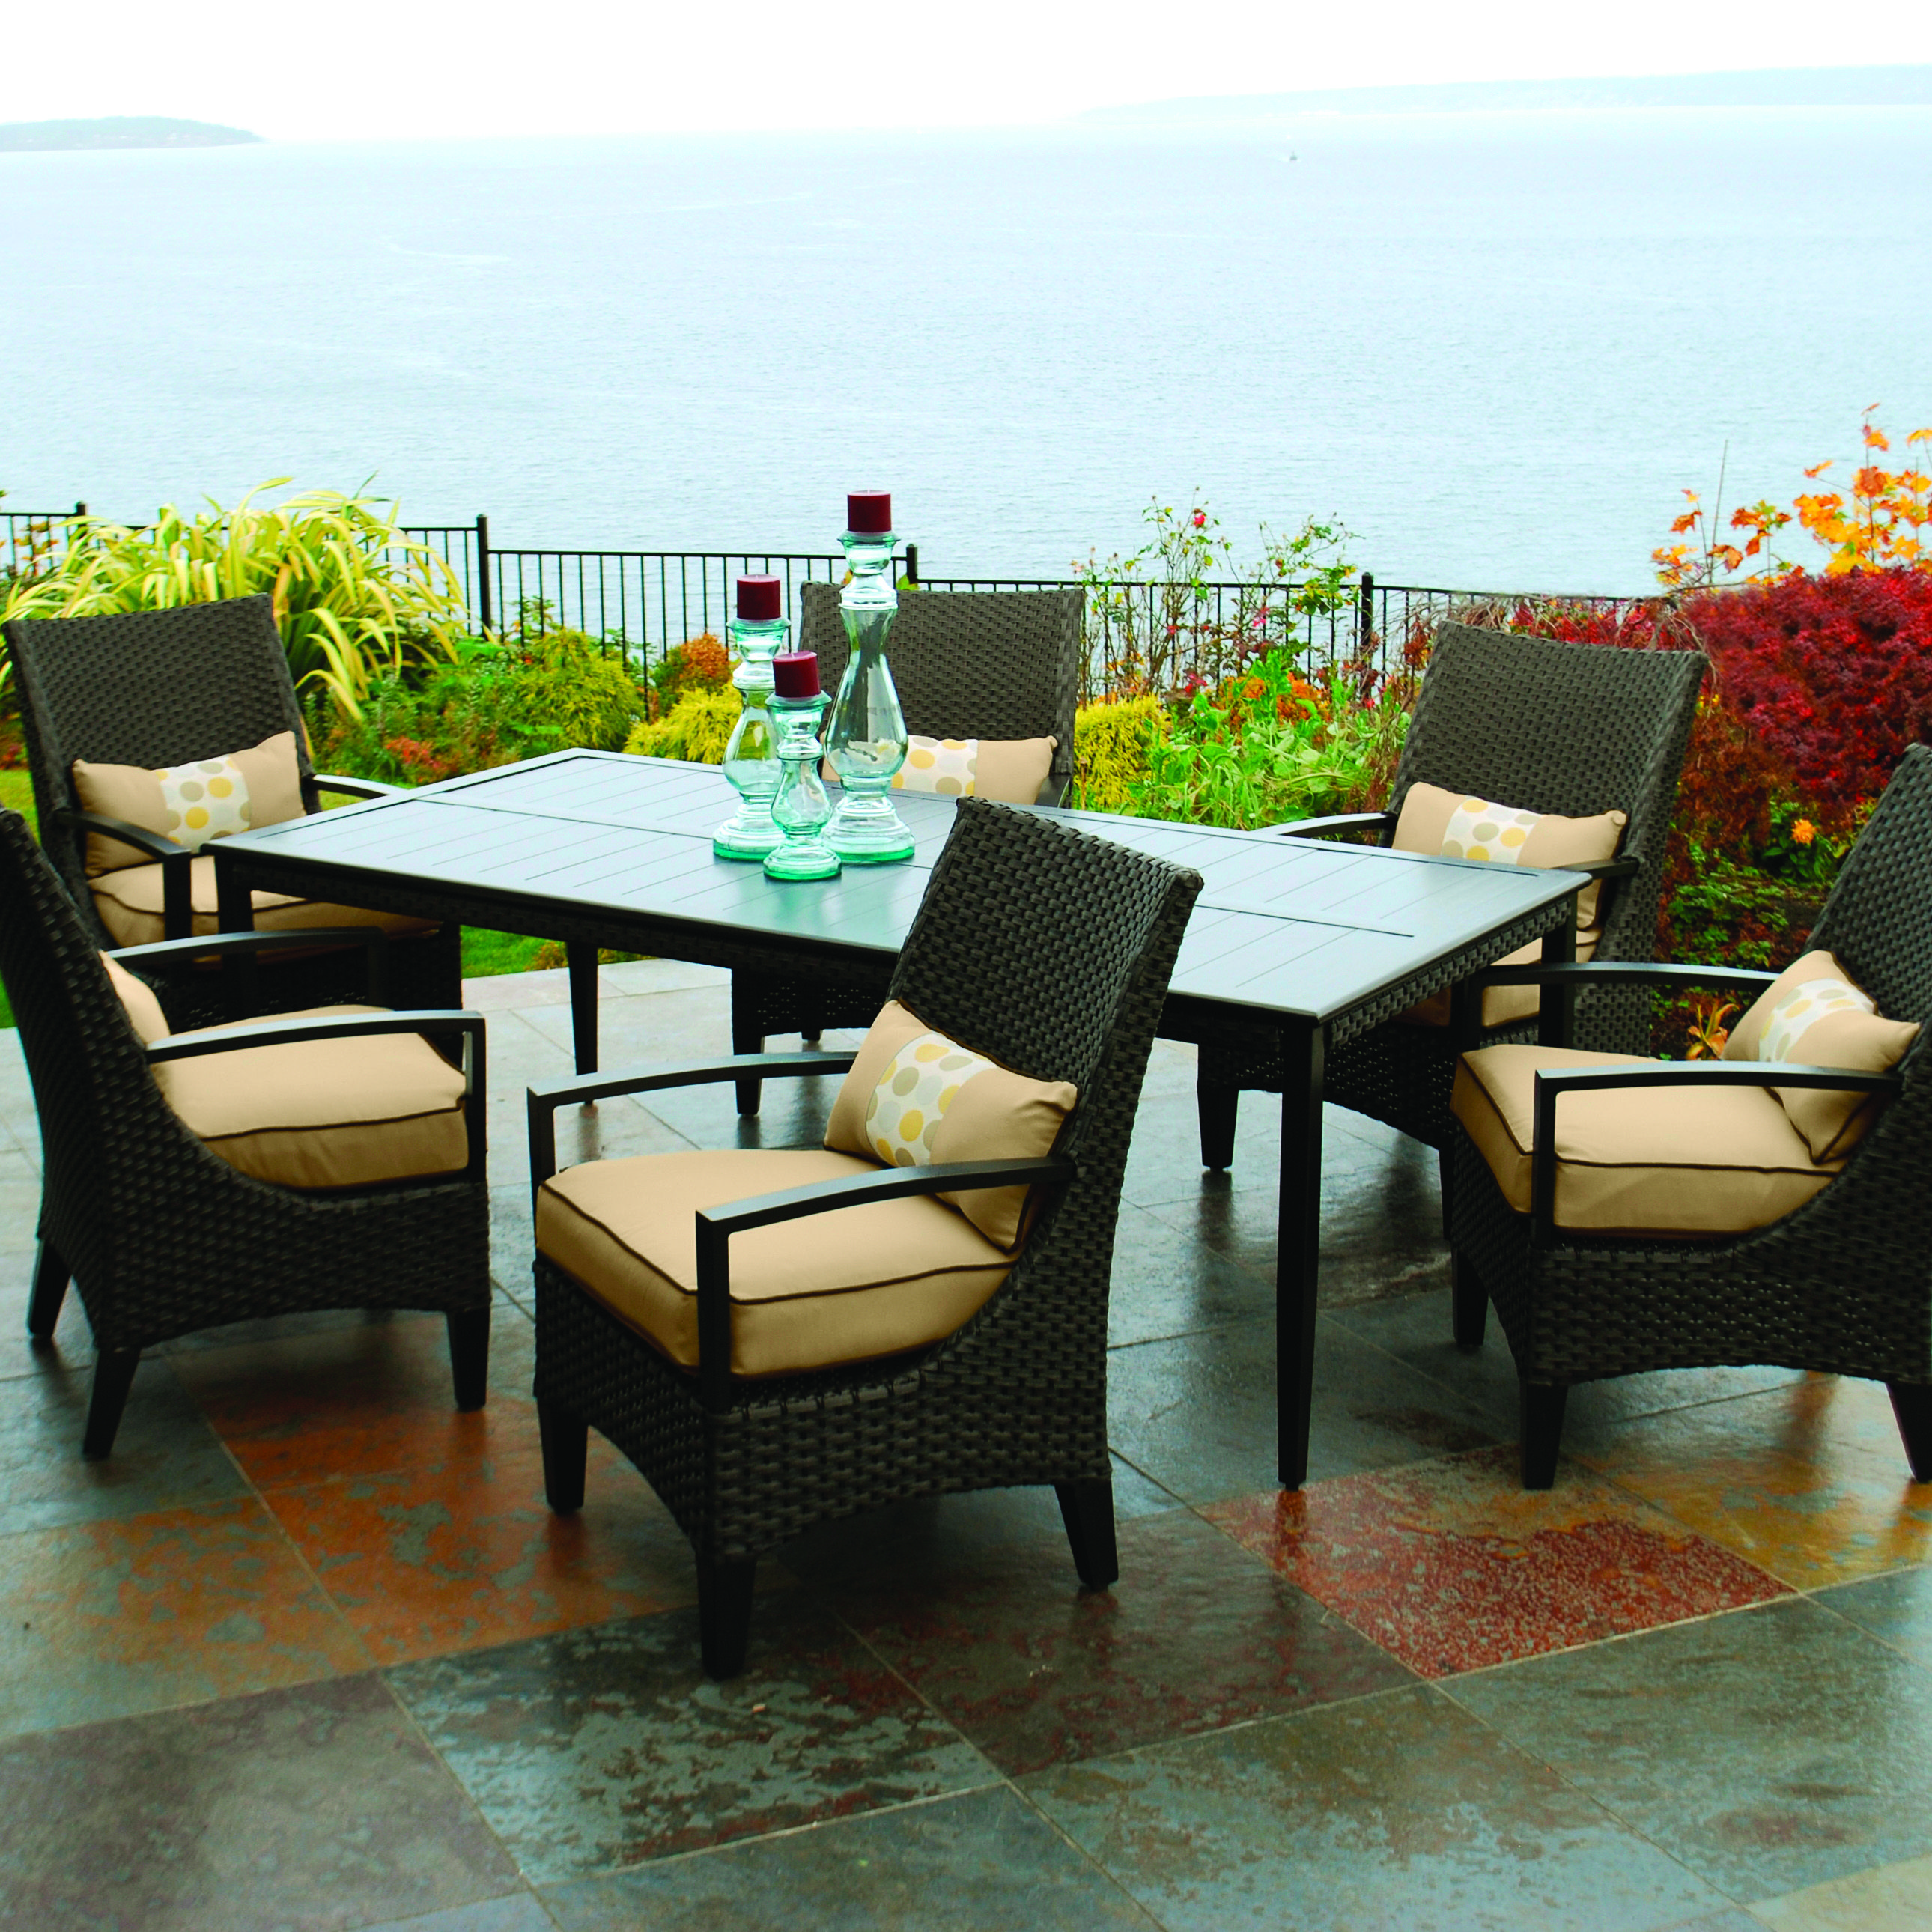 Majestic & tasteful outdoor dining